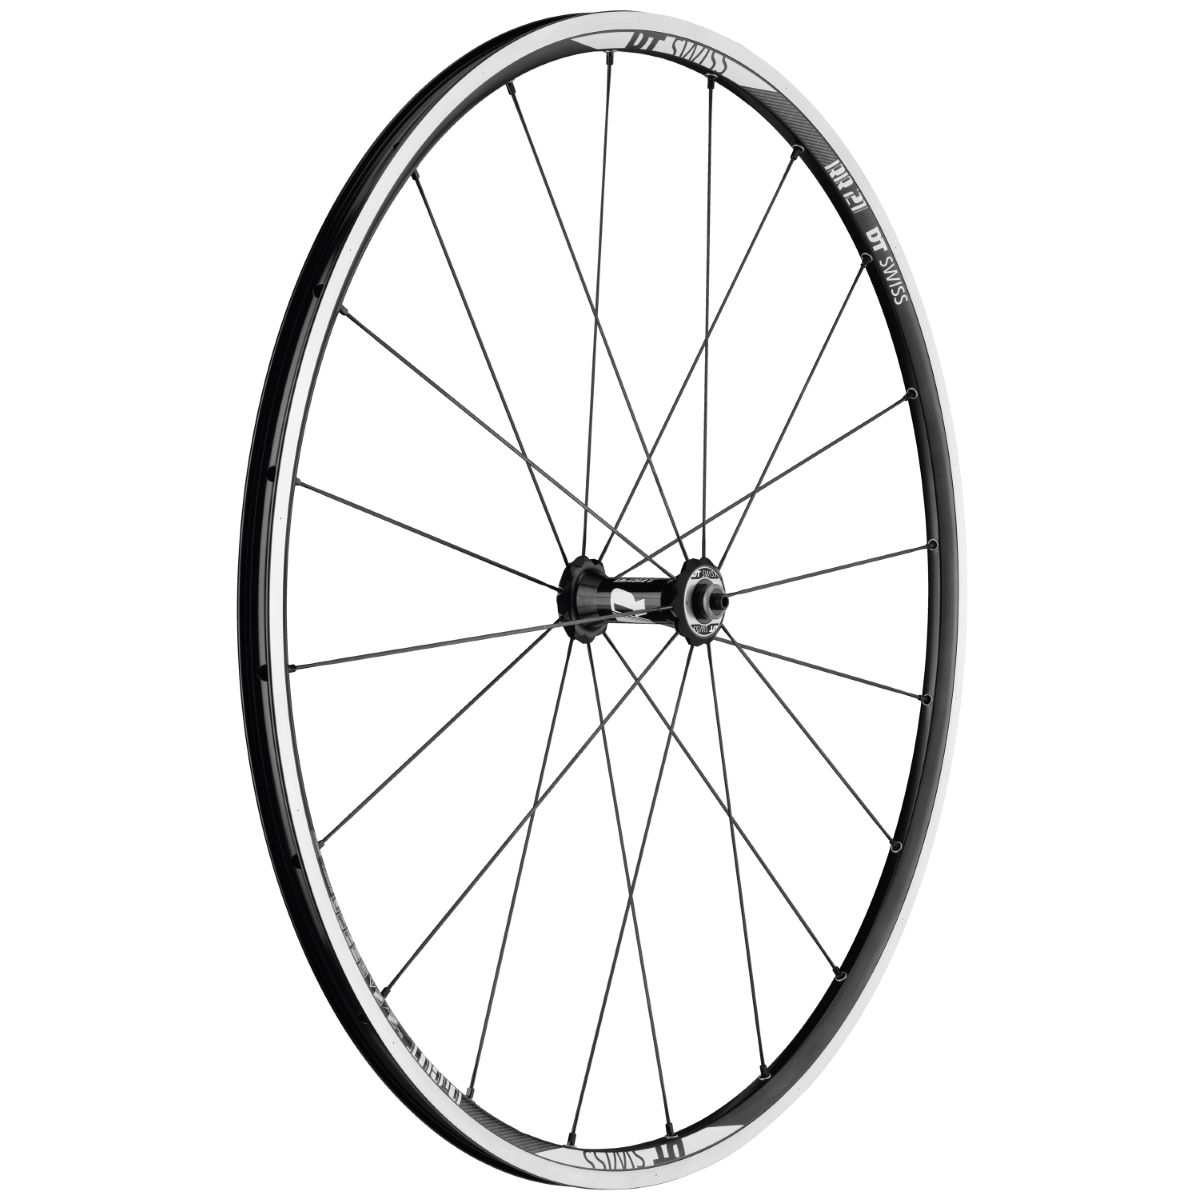 Roue avant DT Swiss RR21 Dicut (alliage) - 700c - Clincher Noir/Blanc Roues performance